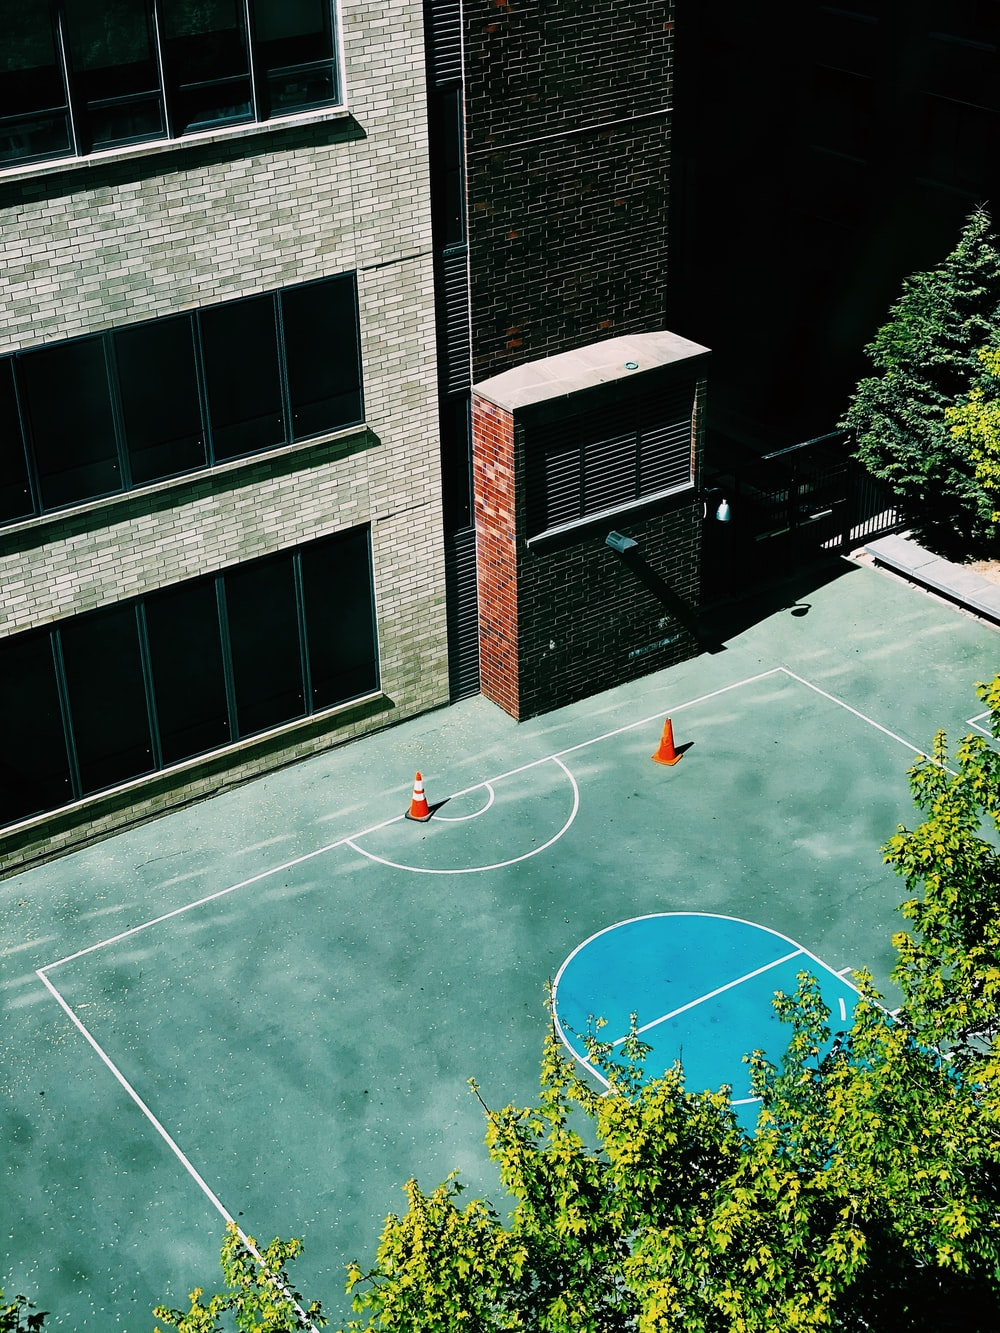 green and white basketball court